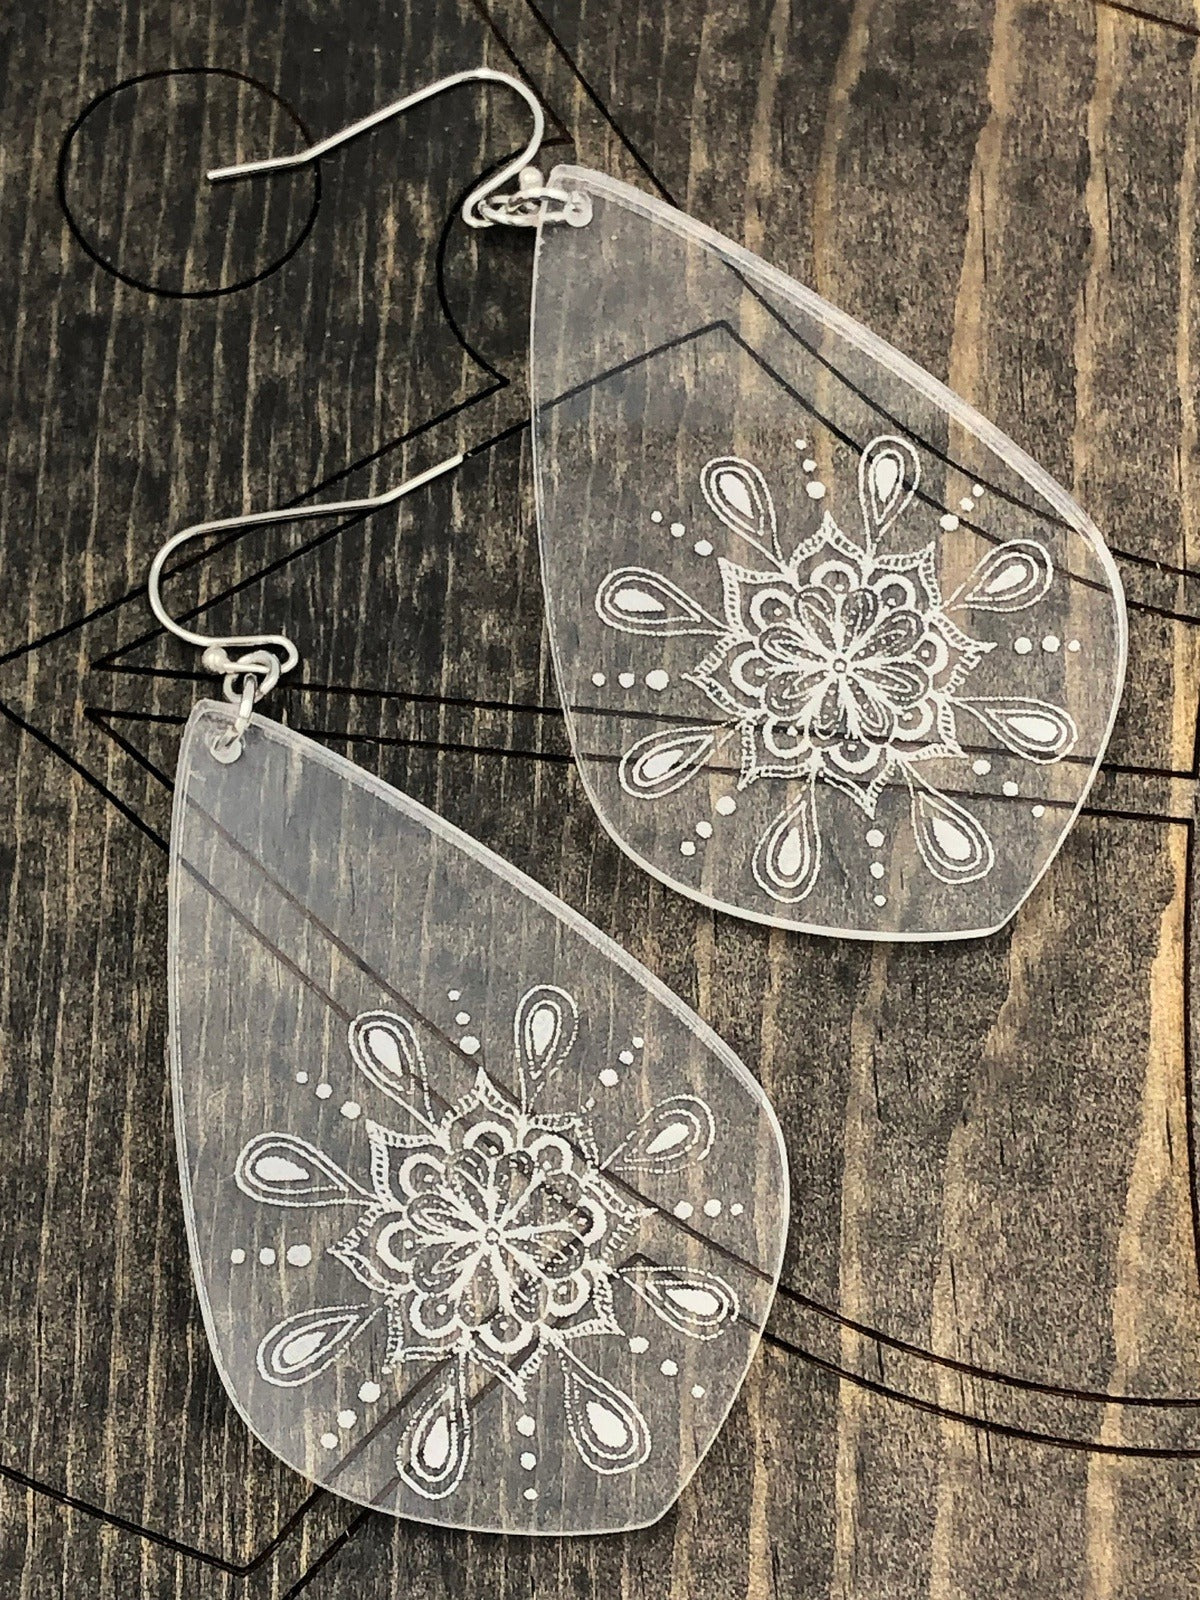 Mandala Engraved Earrings, Boho Jewelry, Engraved Mandala Acrylic Earrings, Women's Earrings, Teardrop Earrings, Rectangle Engraved